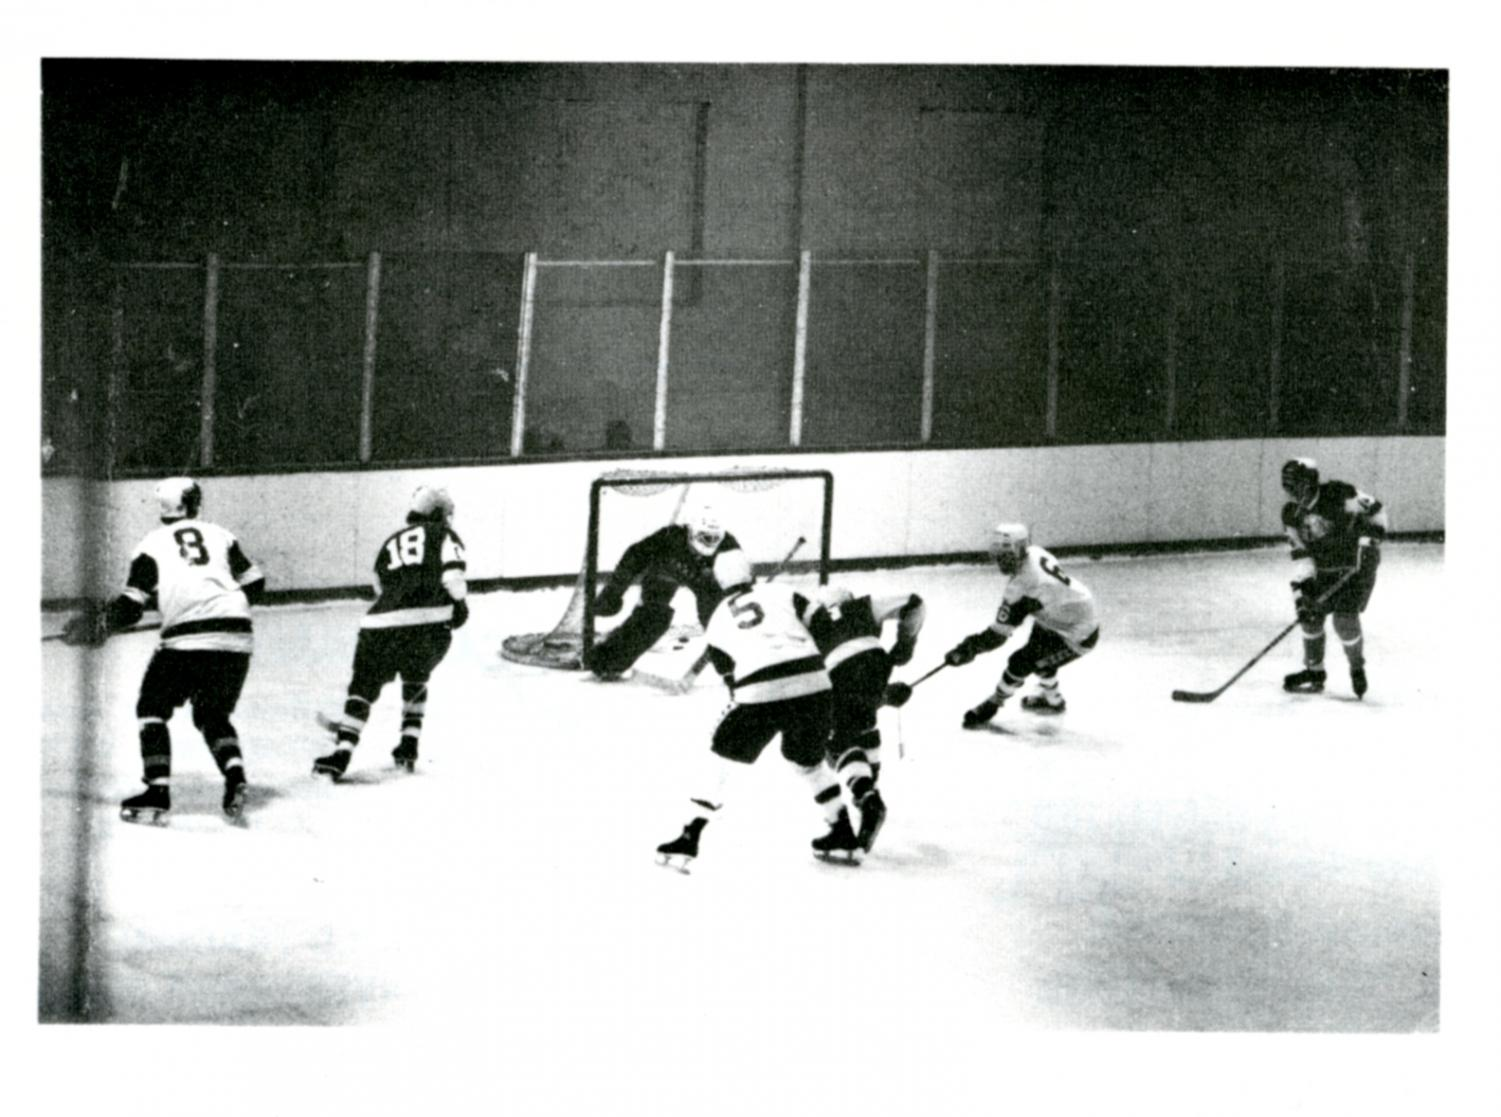 The St. John's Ice Hockey team achieved varsity status in 1980.